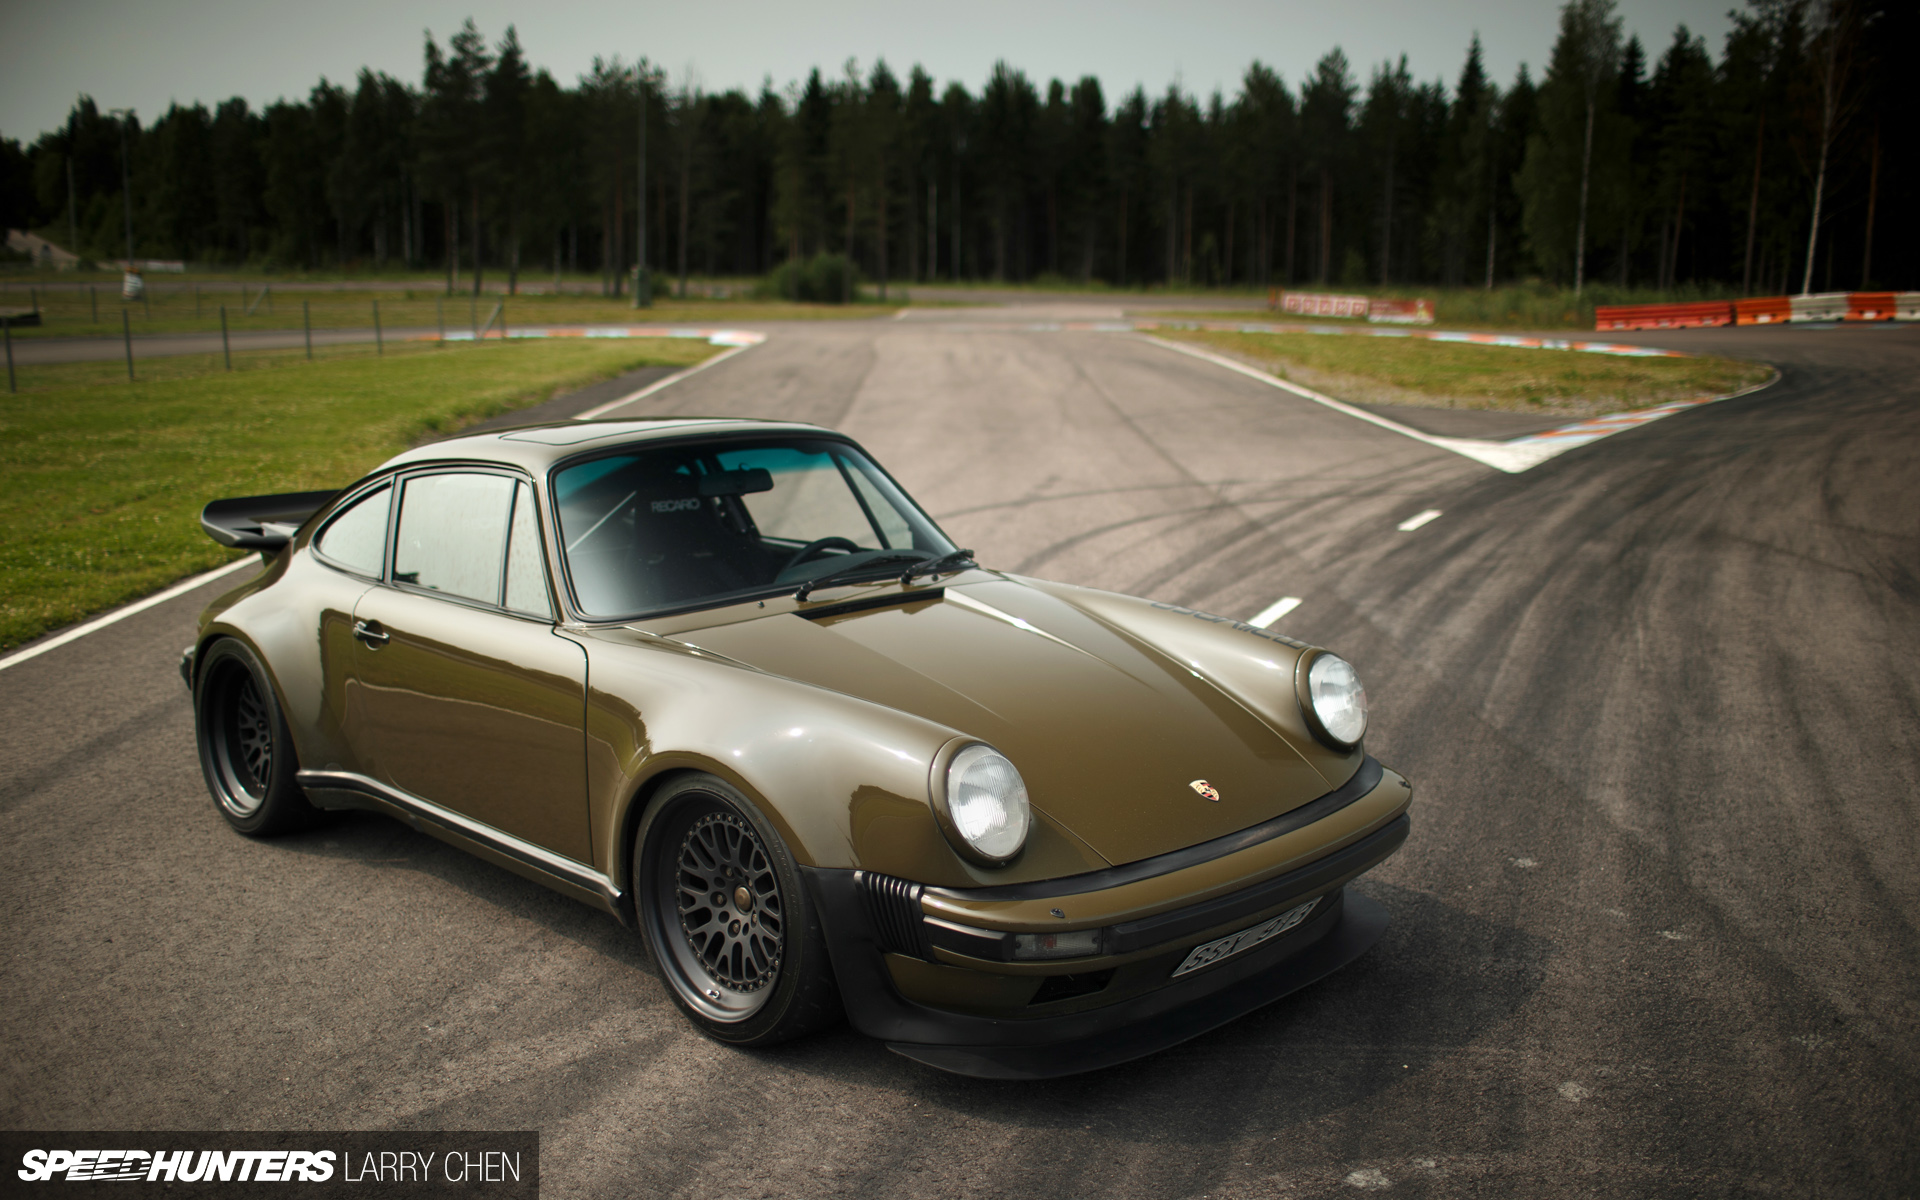 Street Racer A 930 Turbo Redefined Speedhunters